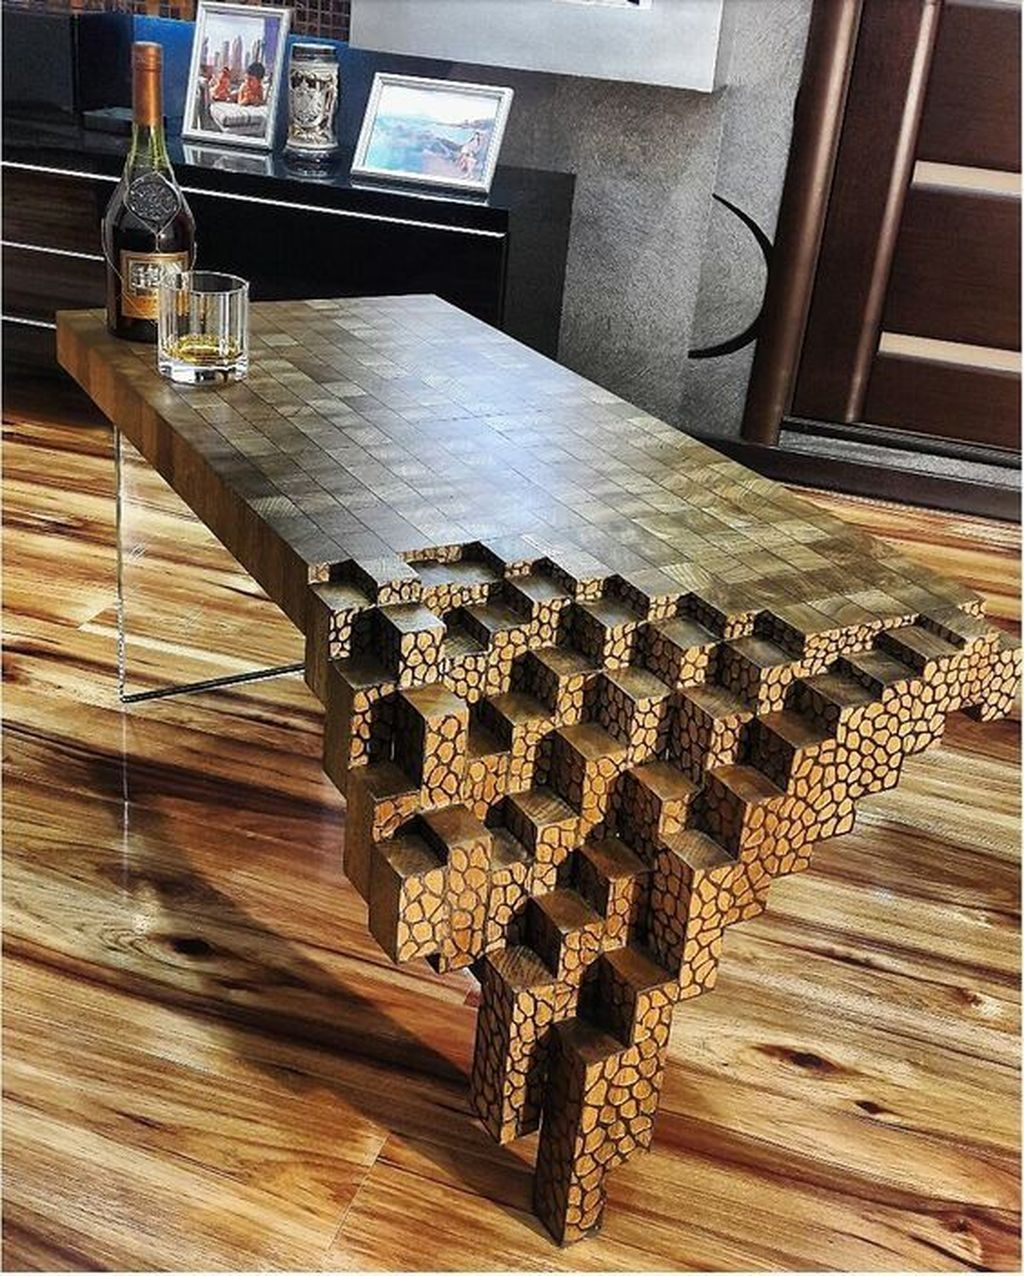 36 unique and creative wooden furniture ideas for your on extraordinary creative wooden furniture design id=29165